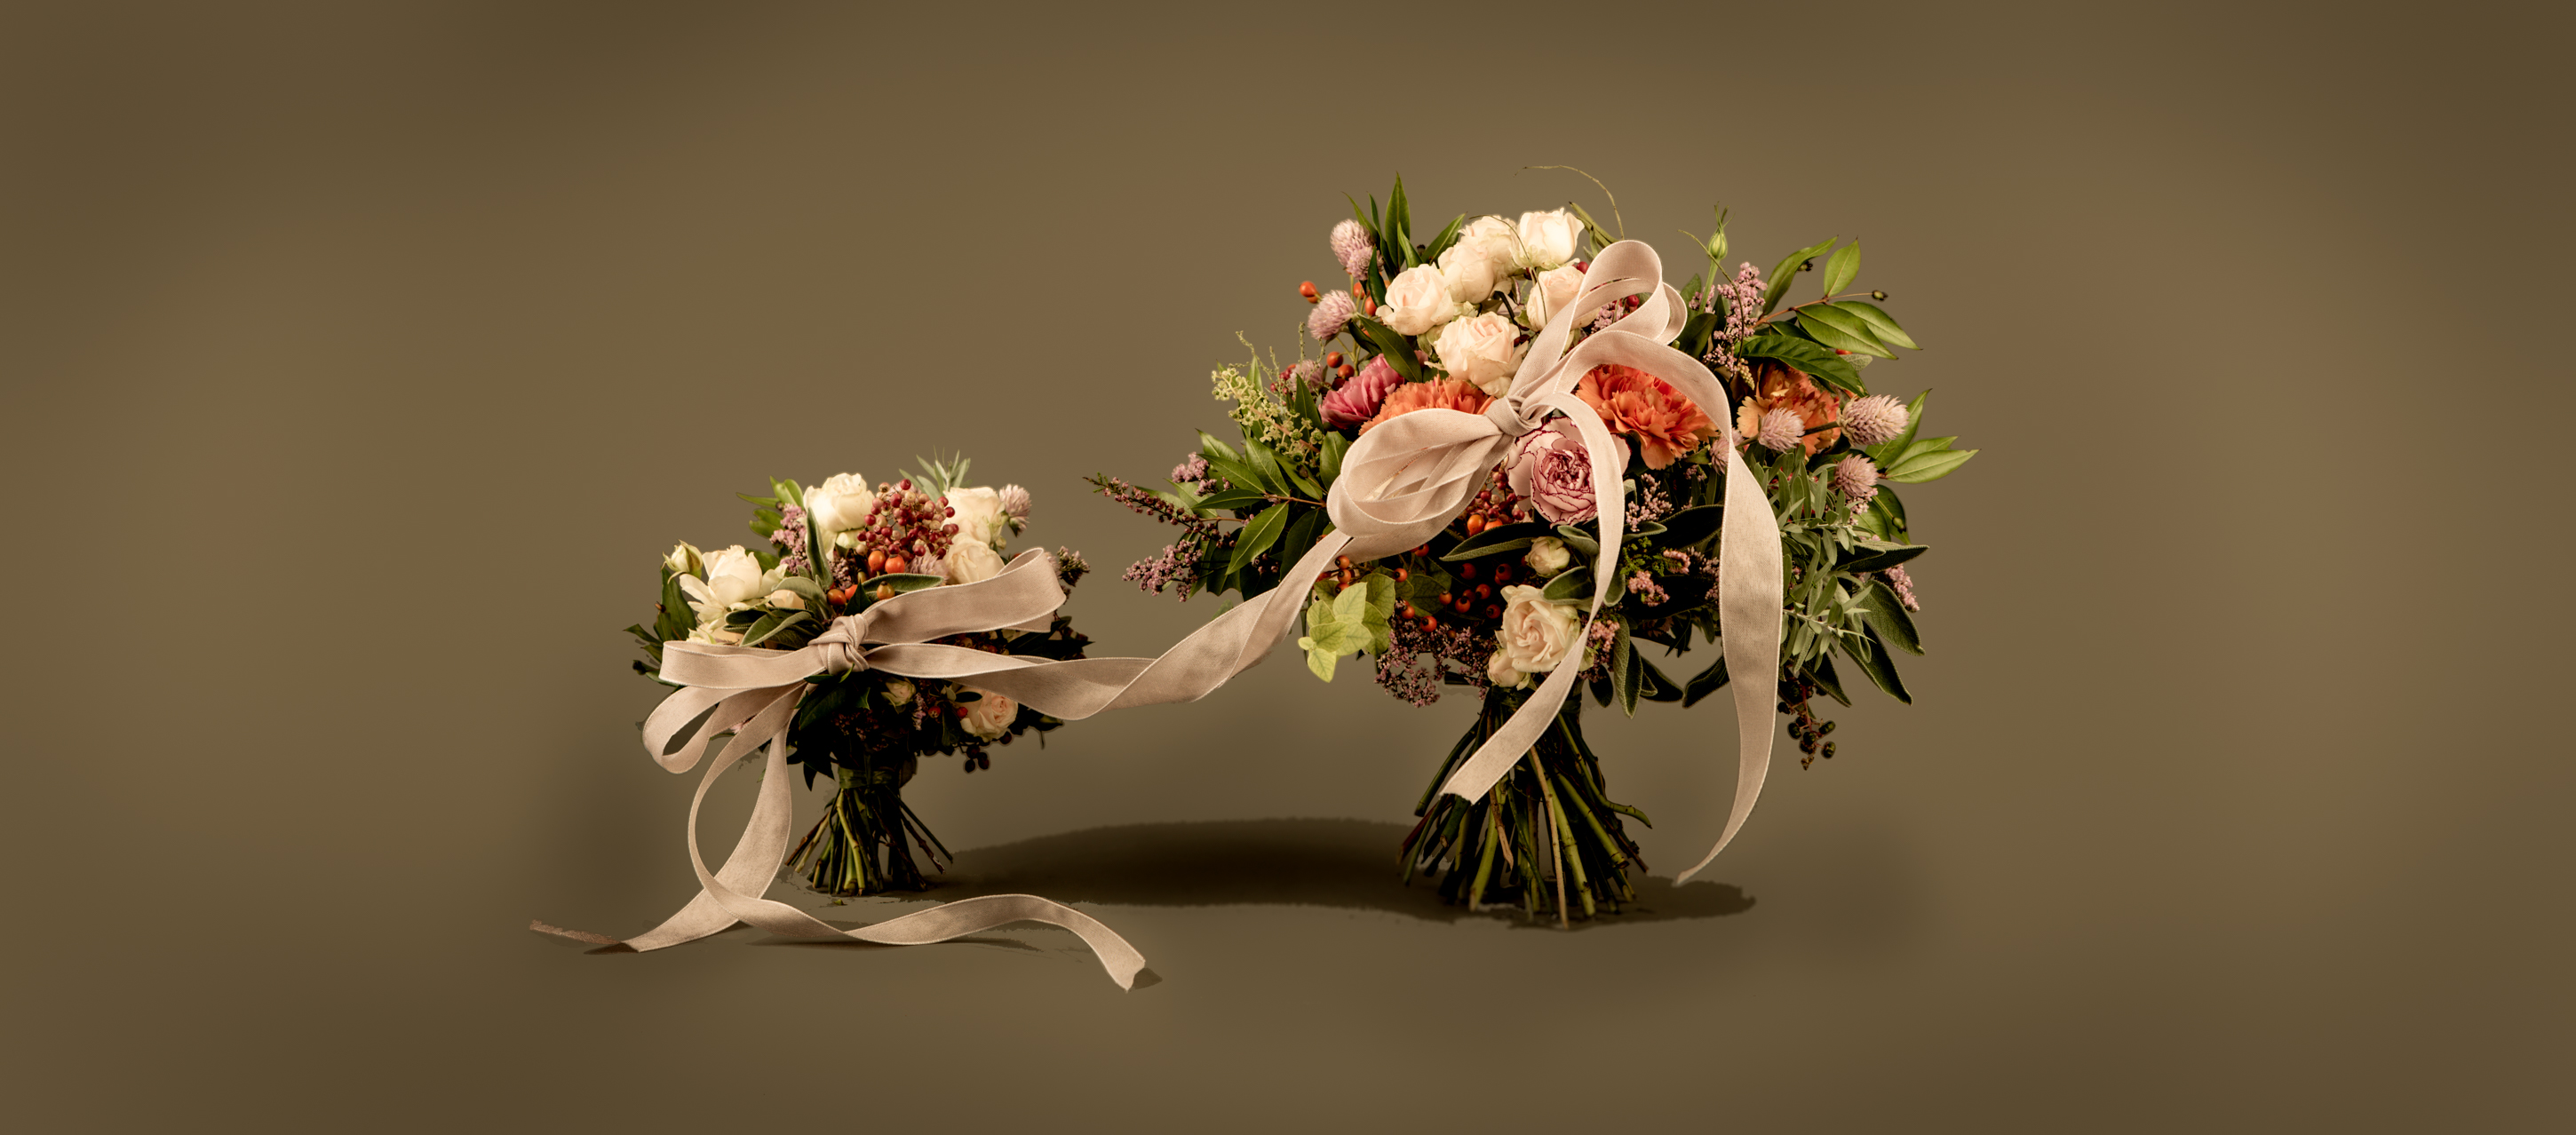 Bib_Bouquets_2018-9971-Edit-2